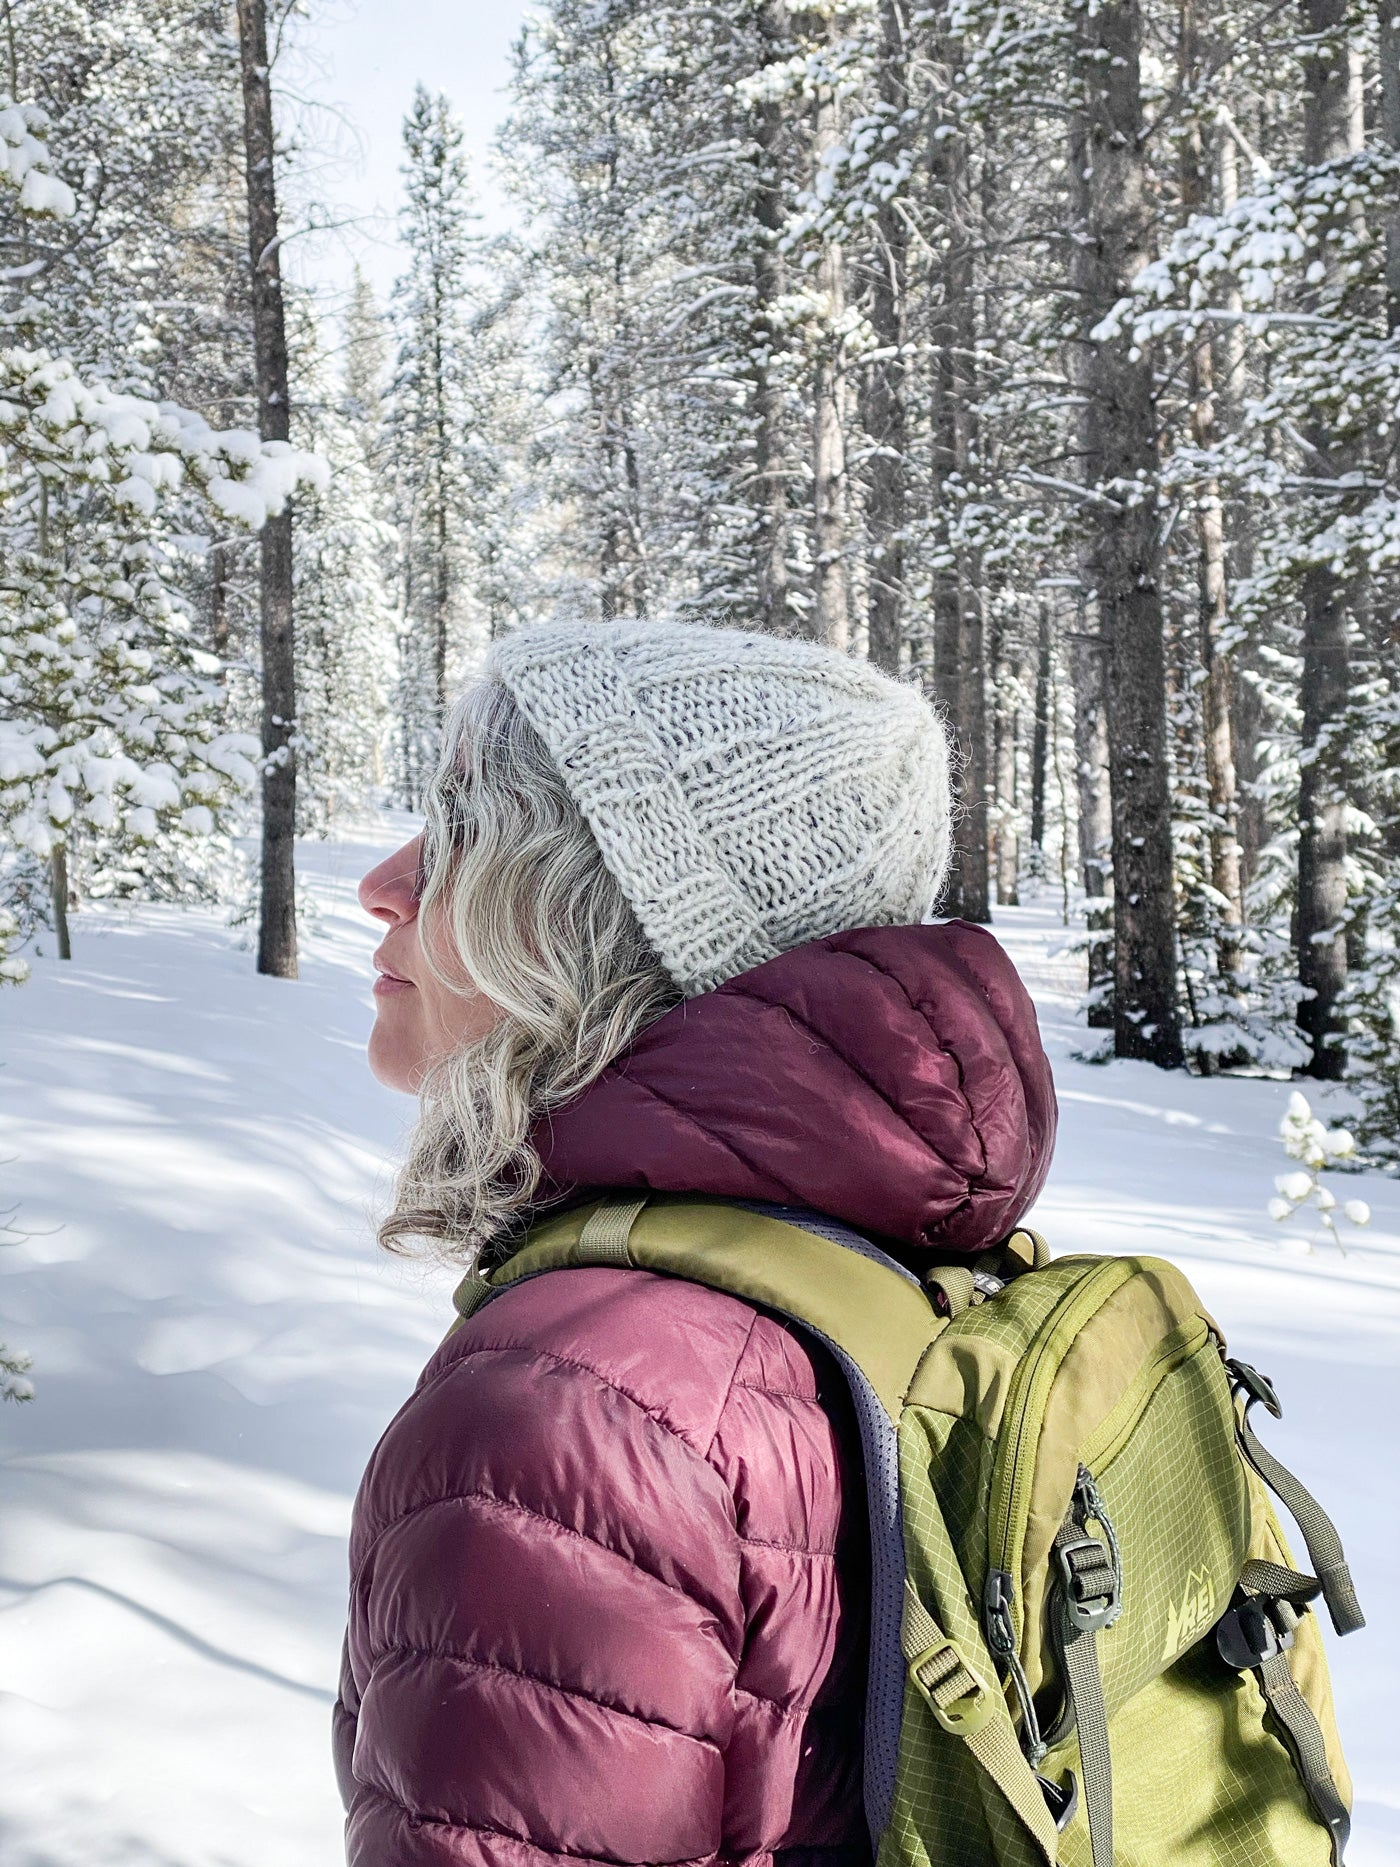 Jaime wears a pale grey, tweedy ribbed hat. She stands in a snowy forest of tall evergreens, keeping warm in a burgundy puffy jacket and olive hiking pack.